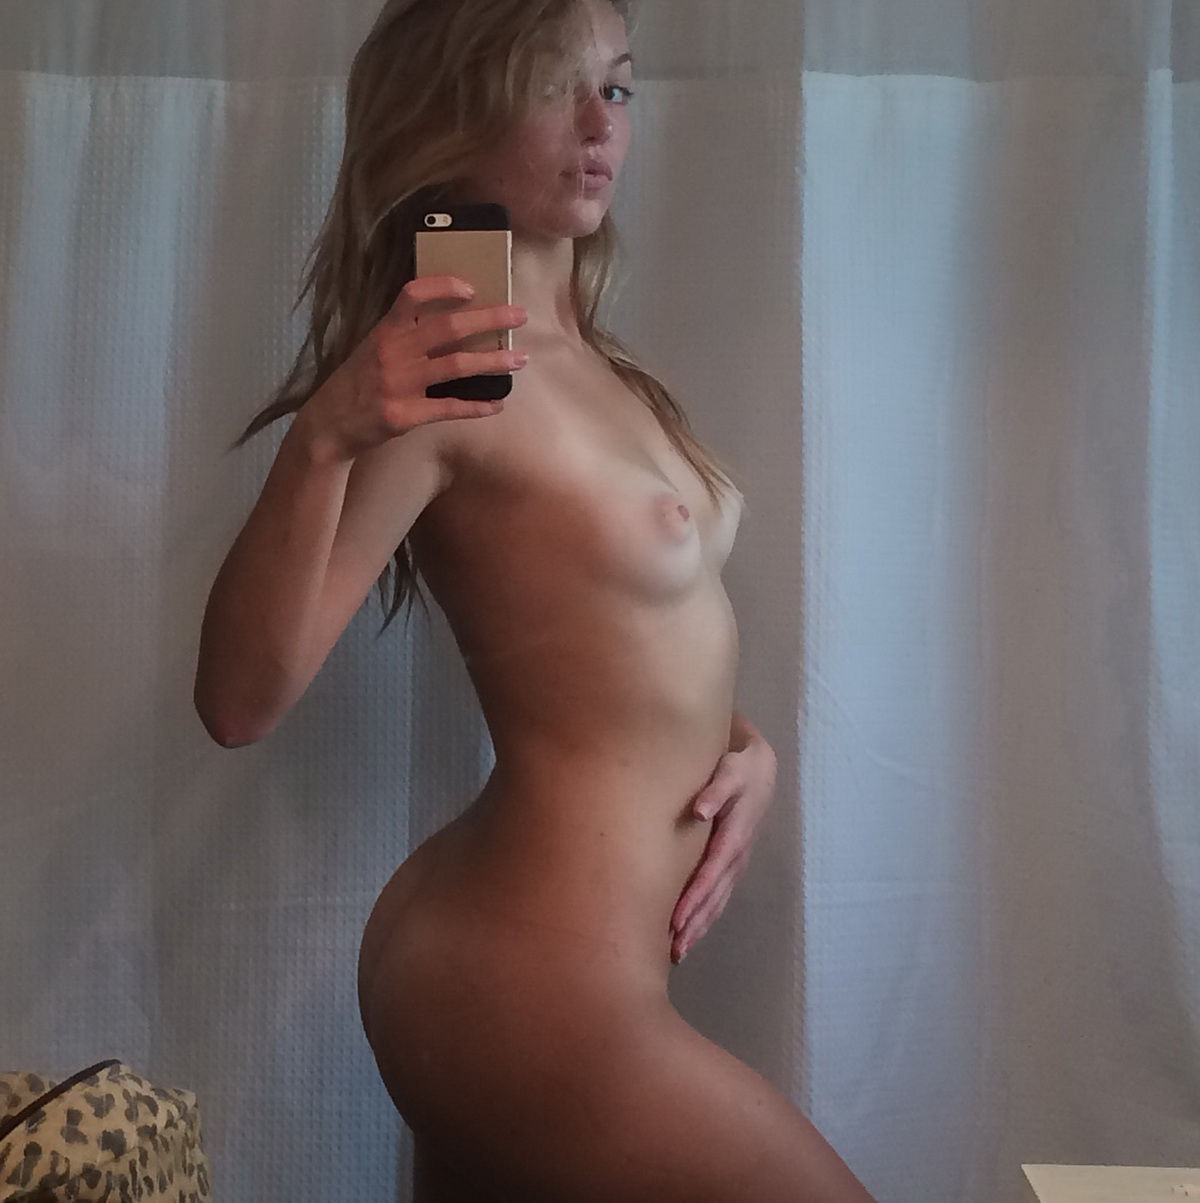 TheFappeningBlog.com - Lili Simmons Nude Leaked Fappening 3.jpg